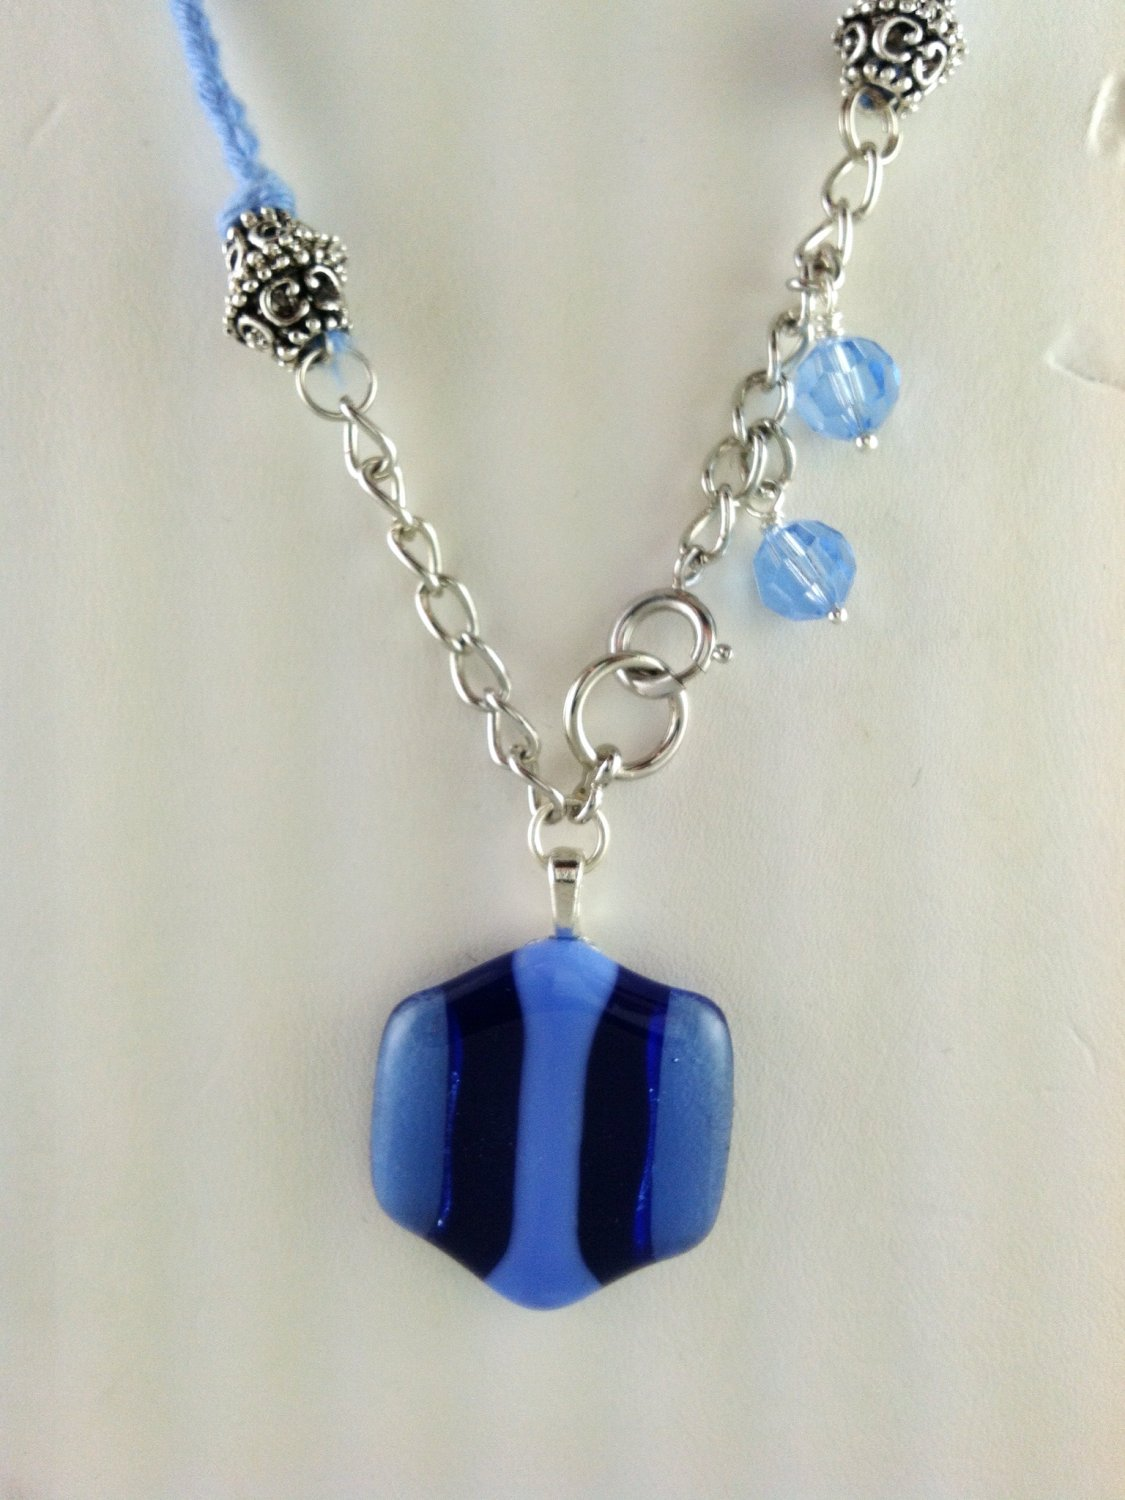 Fused Art Glass Cobalt Blue, Aqua Blue And Light Blue Pendant Necklace Hand Crafted